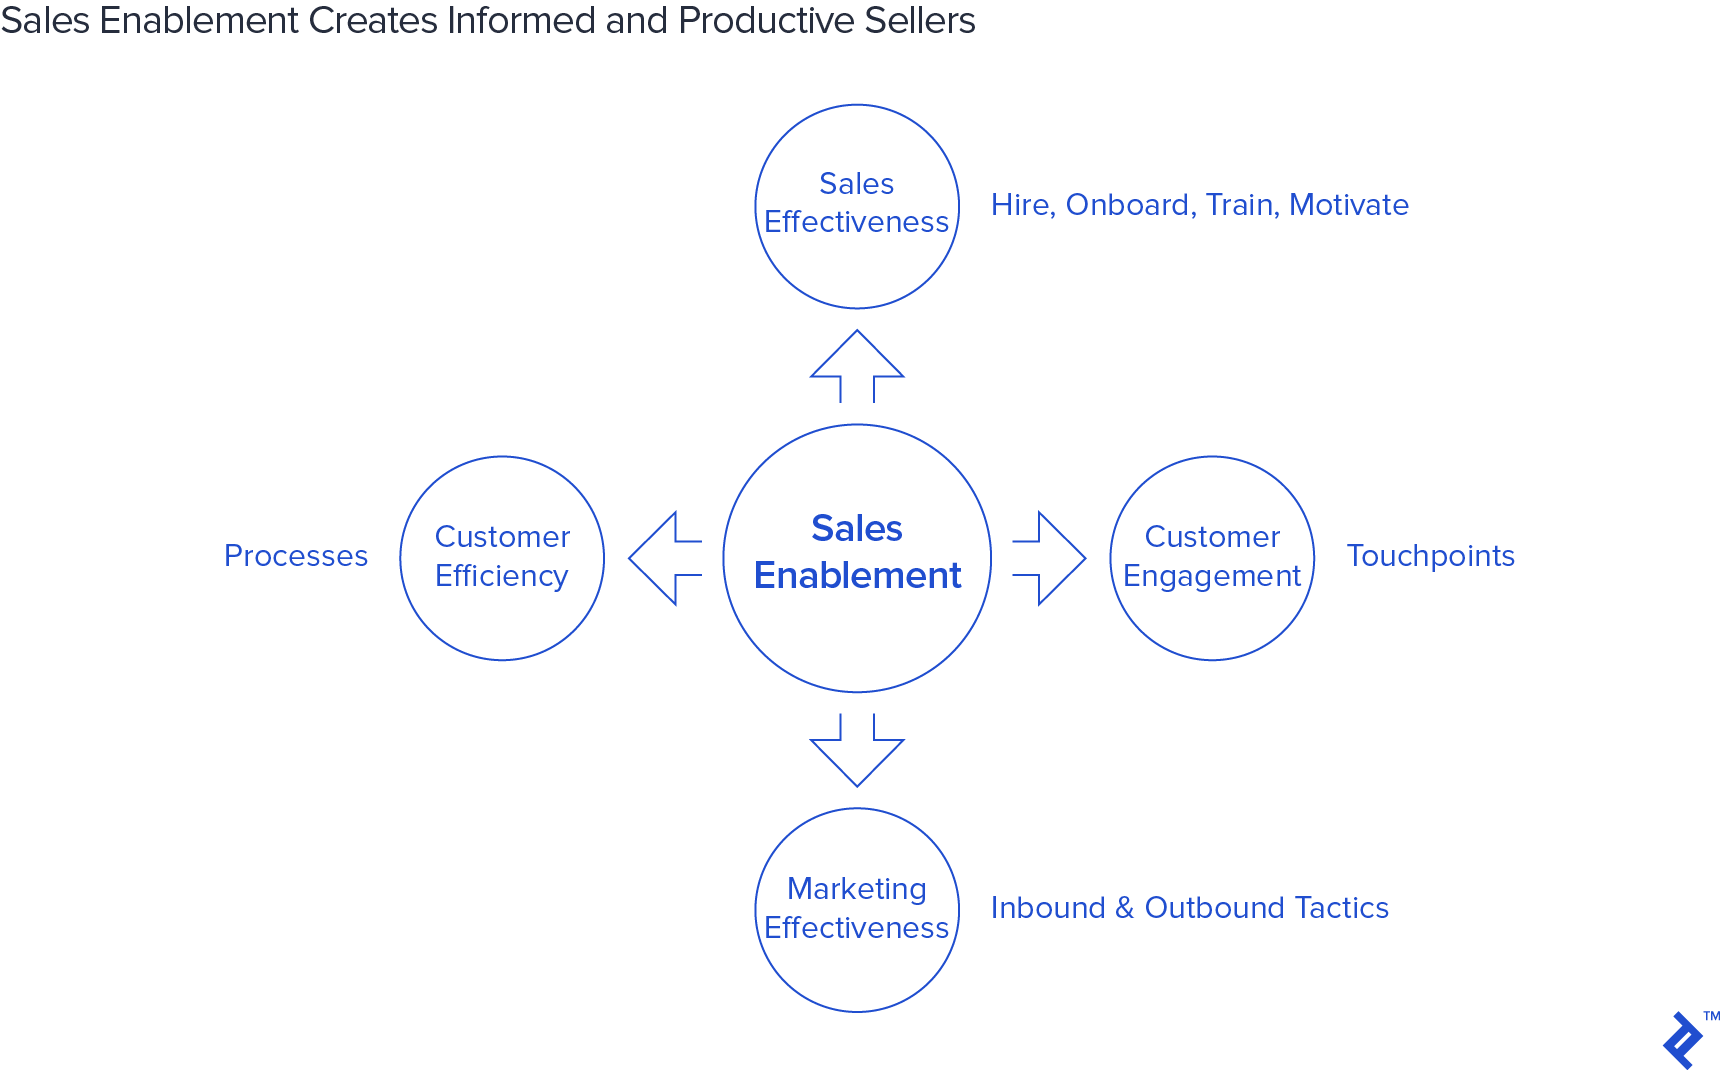 Sales Enablement Creates Informed and Productive Sellers